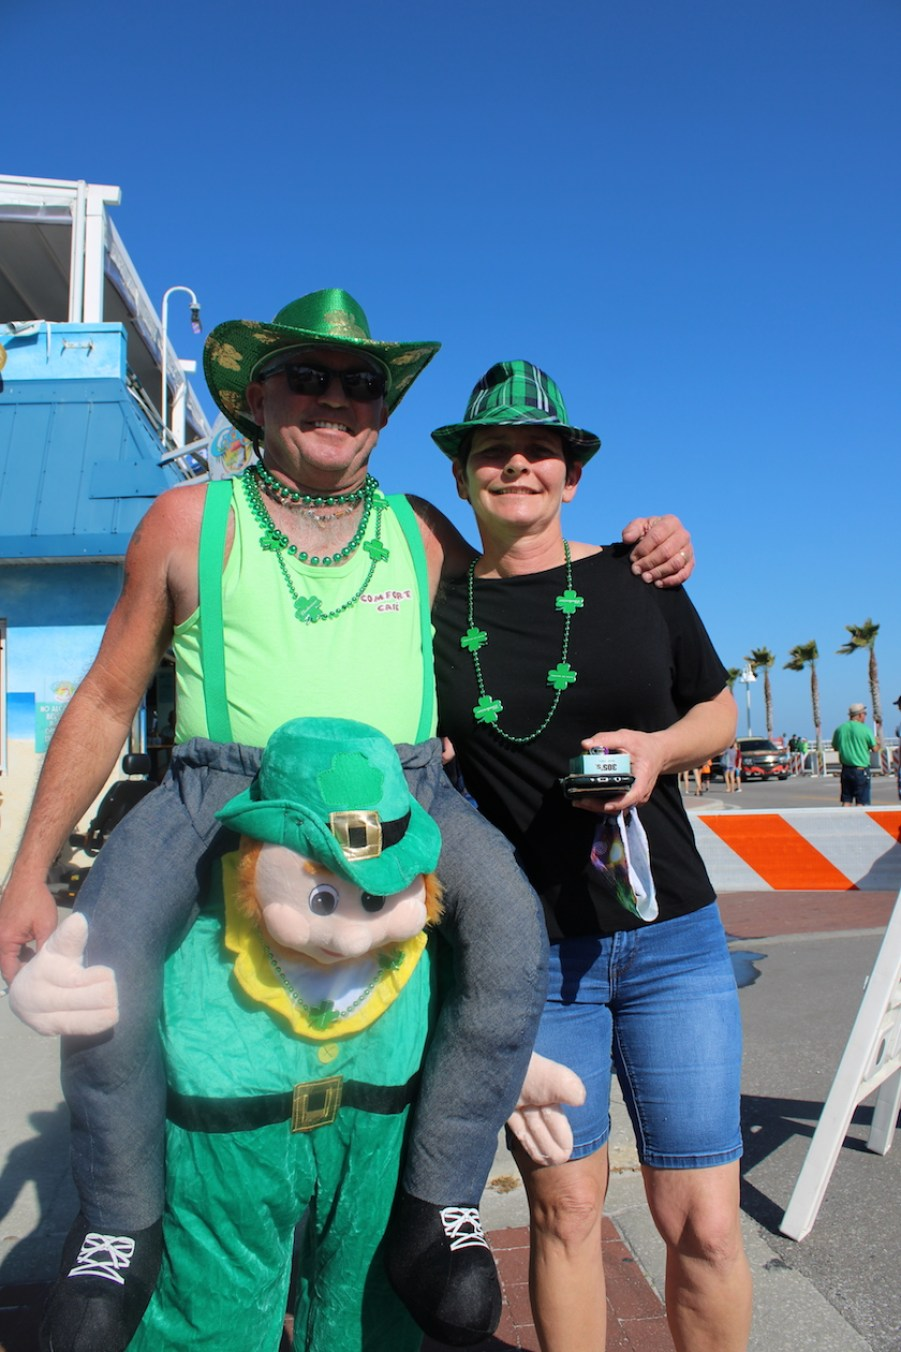 Two people pose on the street in St. Patrick's Day costumes